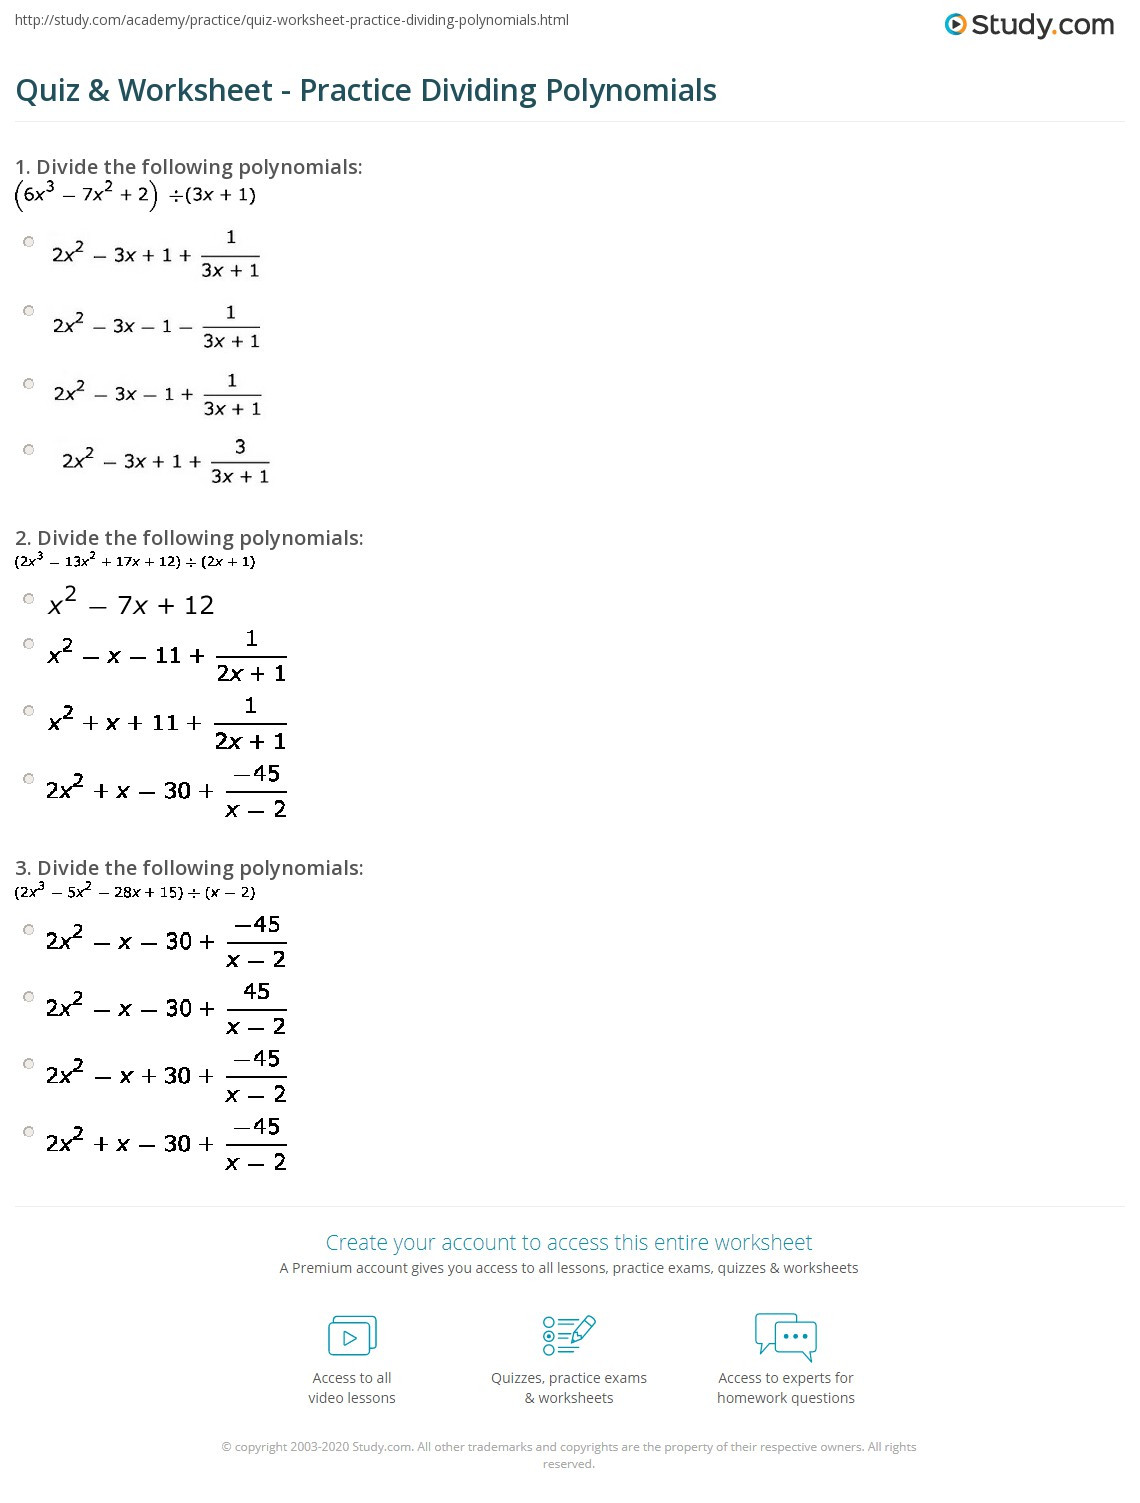 Dividing Polynomials by Monomials Worksheet Quiz & Worksheet Practice Dividing Polynomials